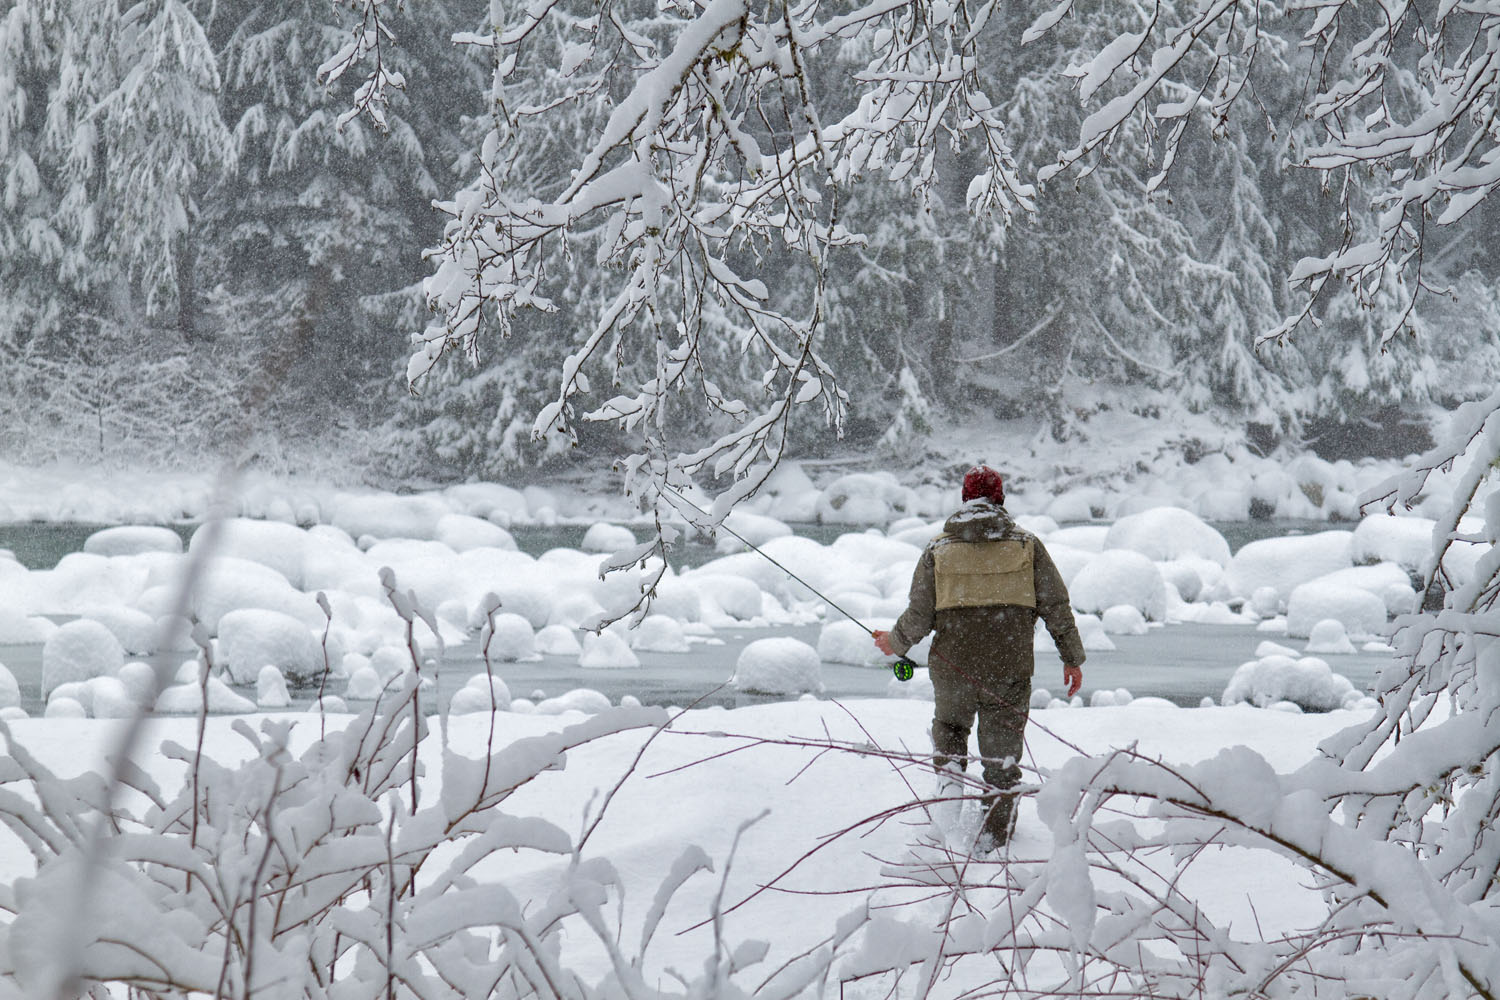 Lifestyle: Chris Solomon works his way through the snow to fly fish in the snow, South Fork of the Stillaguamish River, Central Cascades